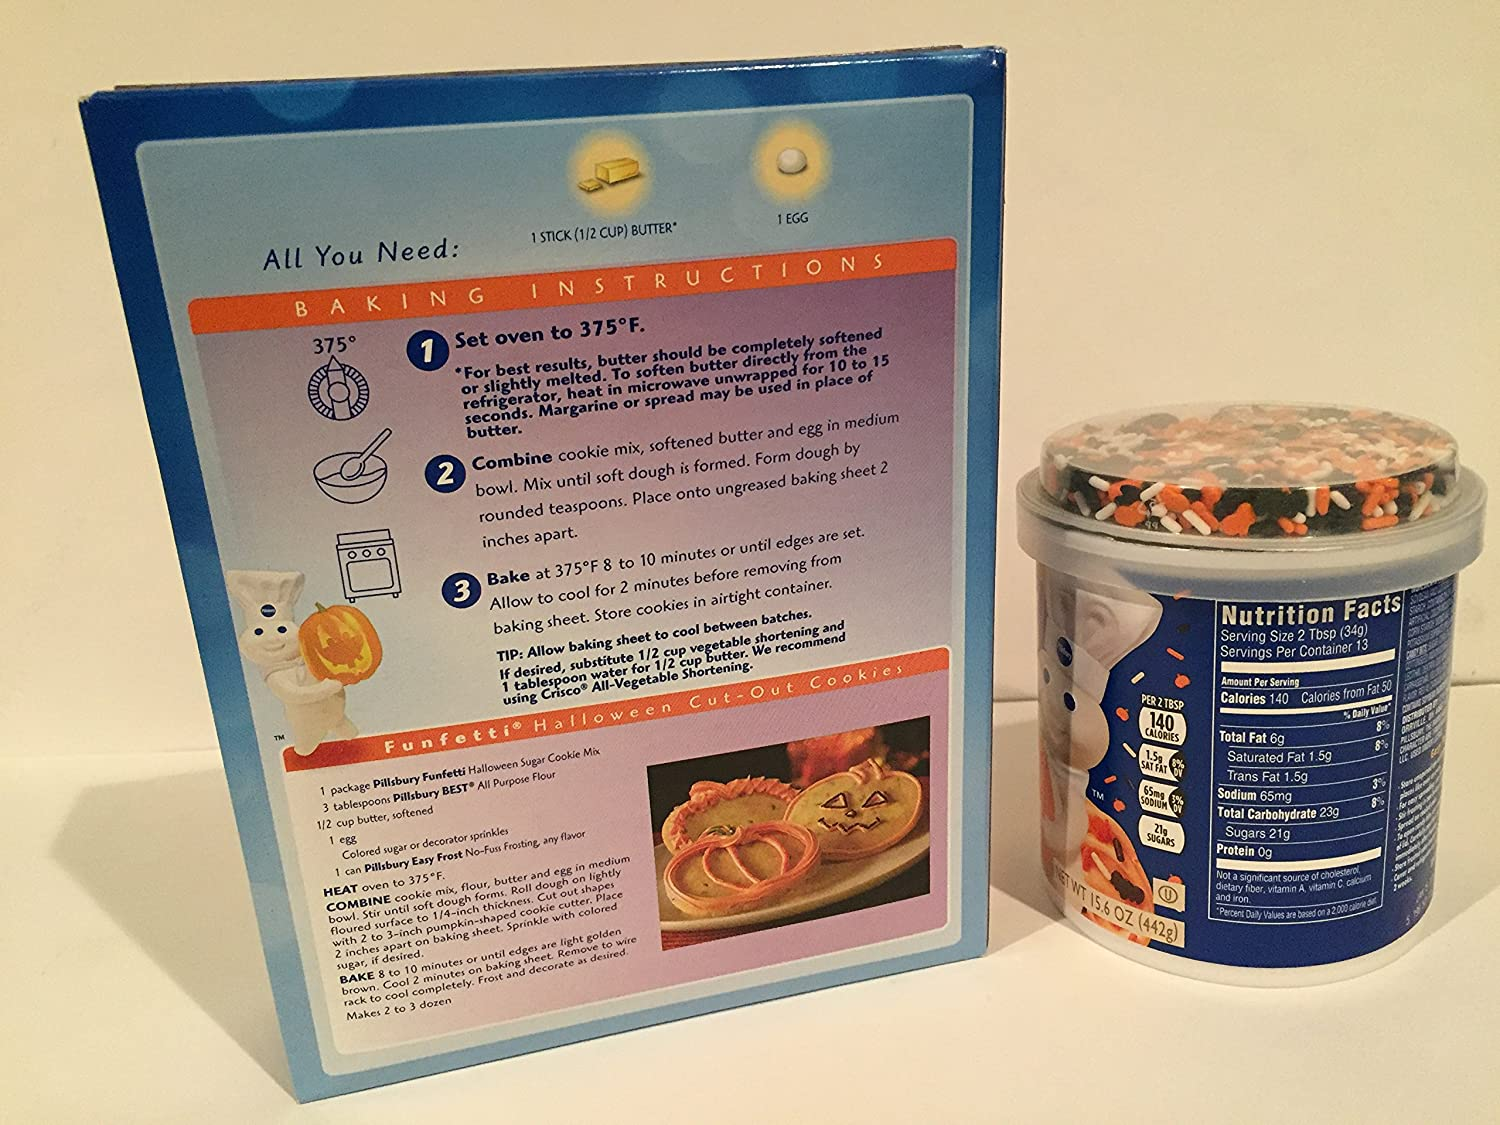 amazoncom pillsbury halloween funfetti sugar cookie mix with candy bits 175 oz and halloween funfetti frosting vanilla wsprinkles